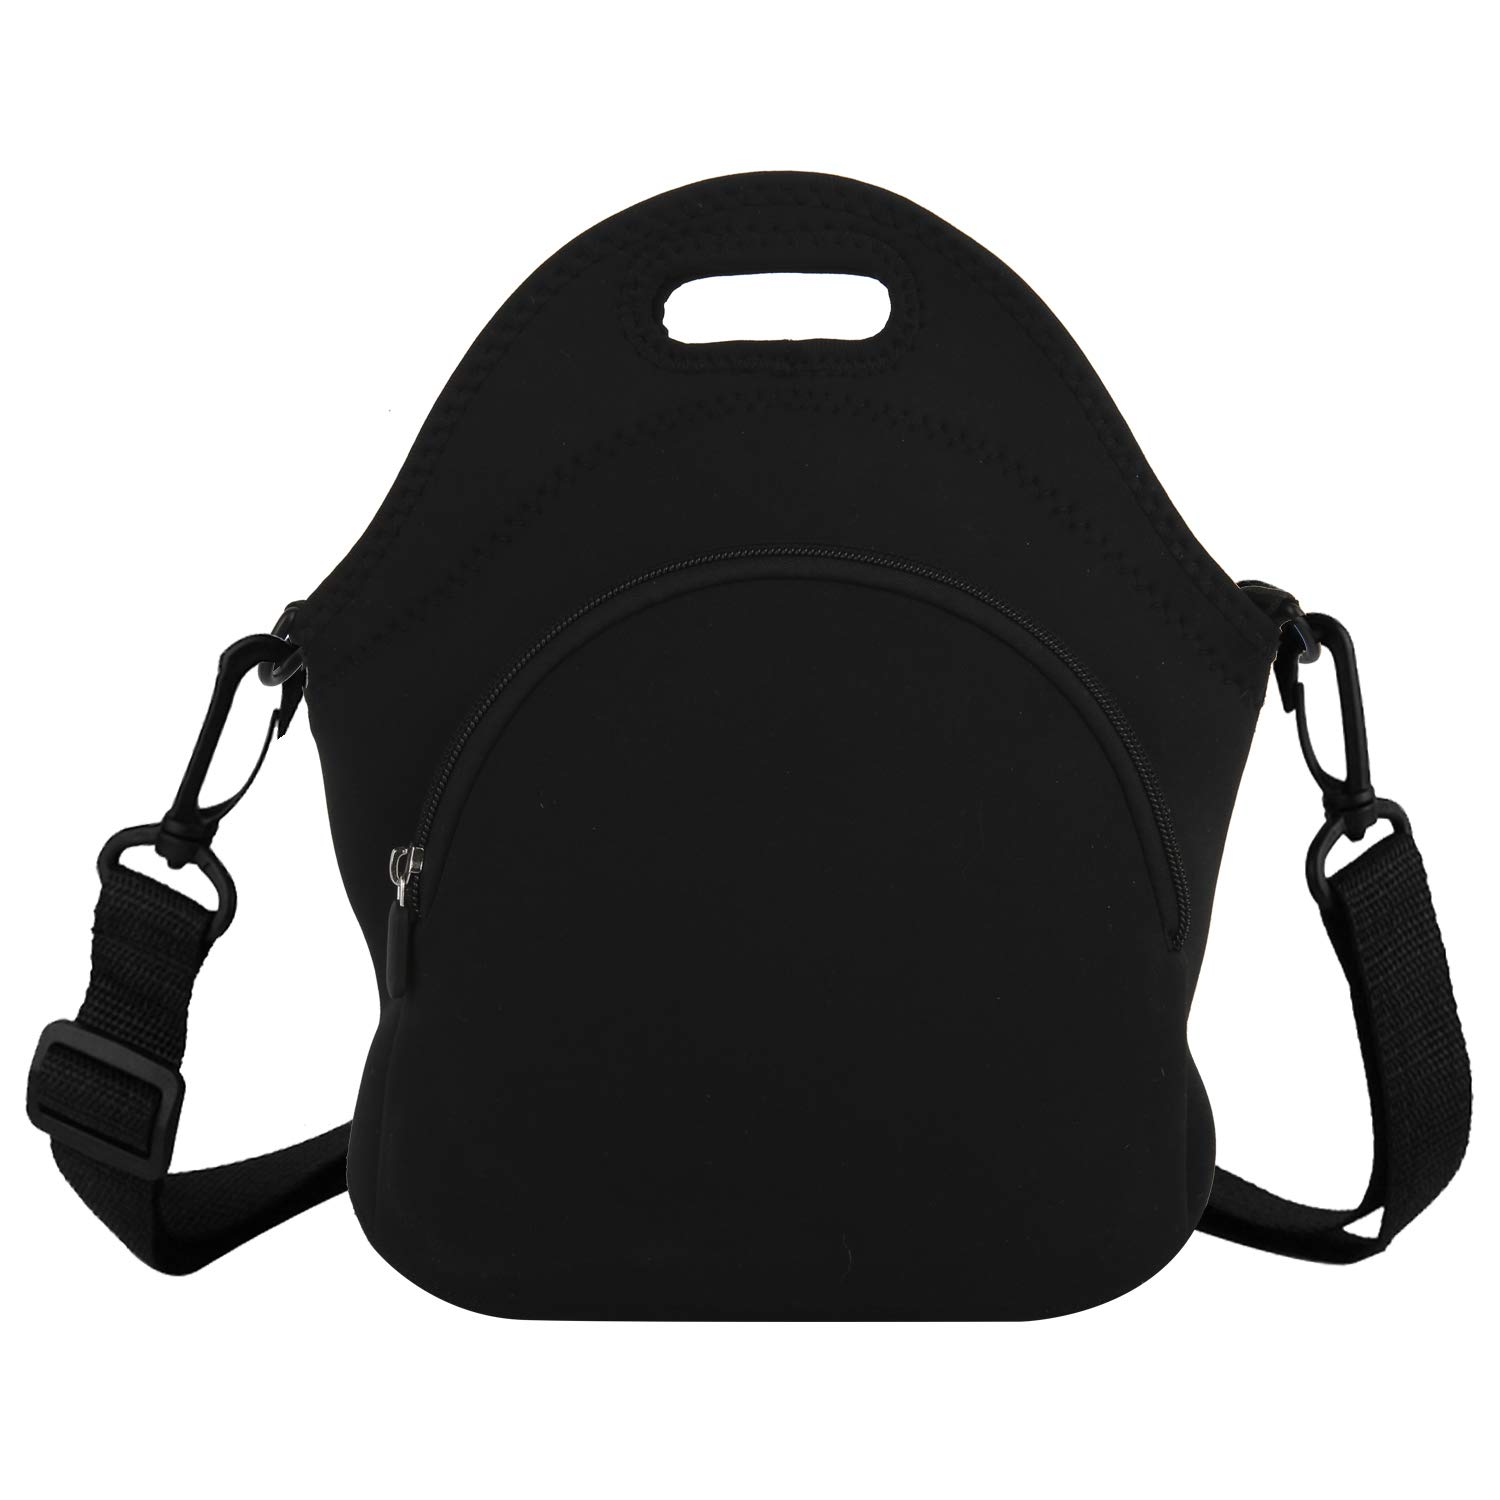 d813bb822530 Black Neoprene Lunch Boxes Bag with Zipper Pocket and Detachable Strap for  School Picnic Office